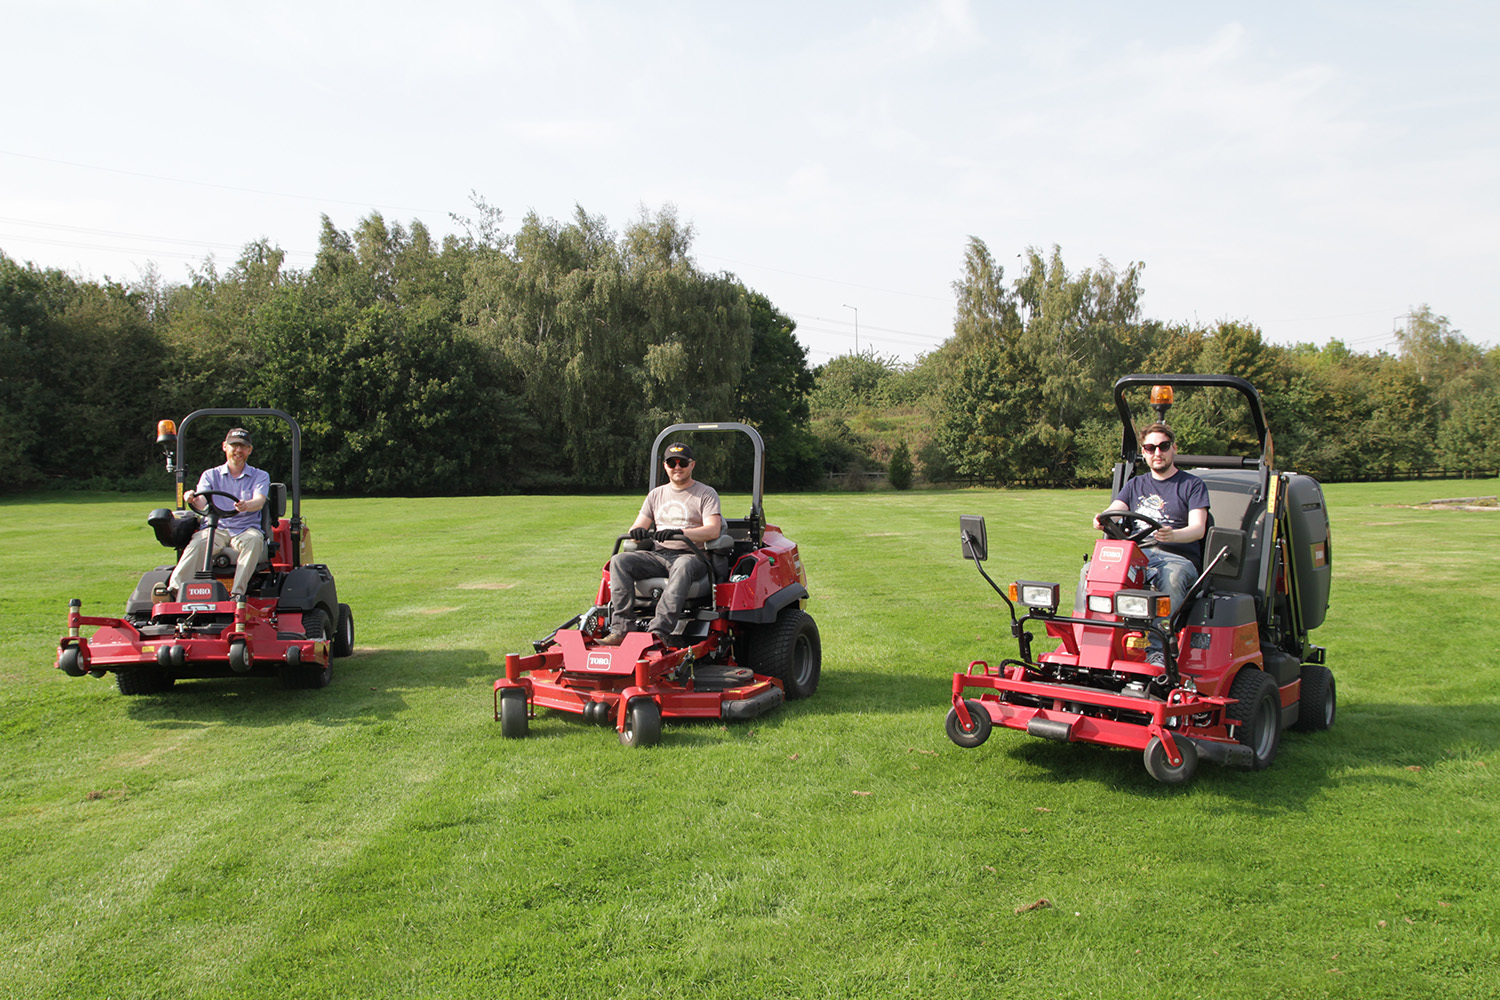 Lawnmower research